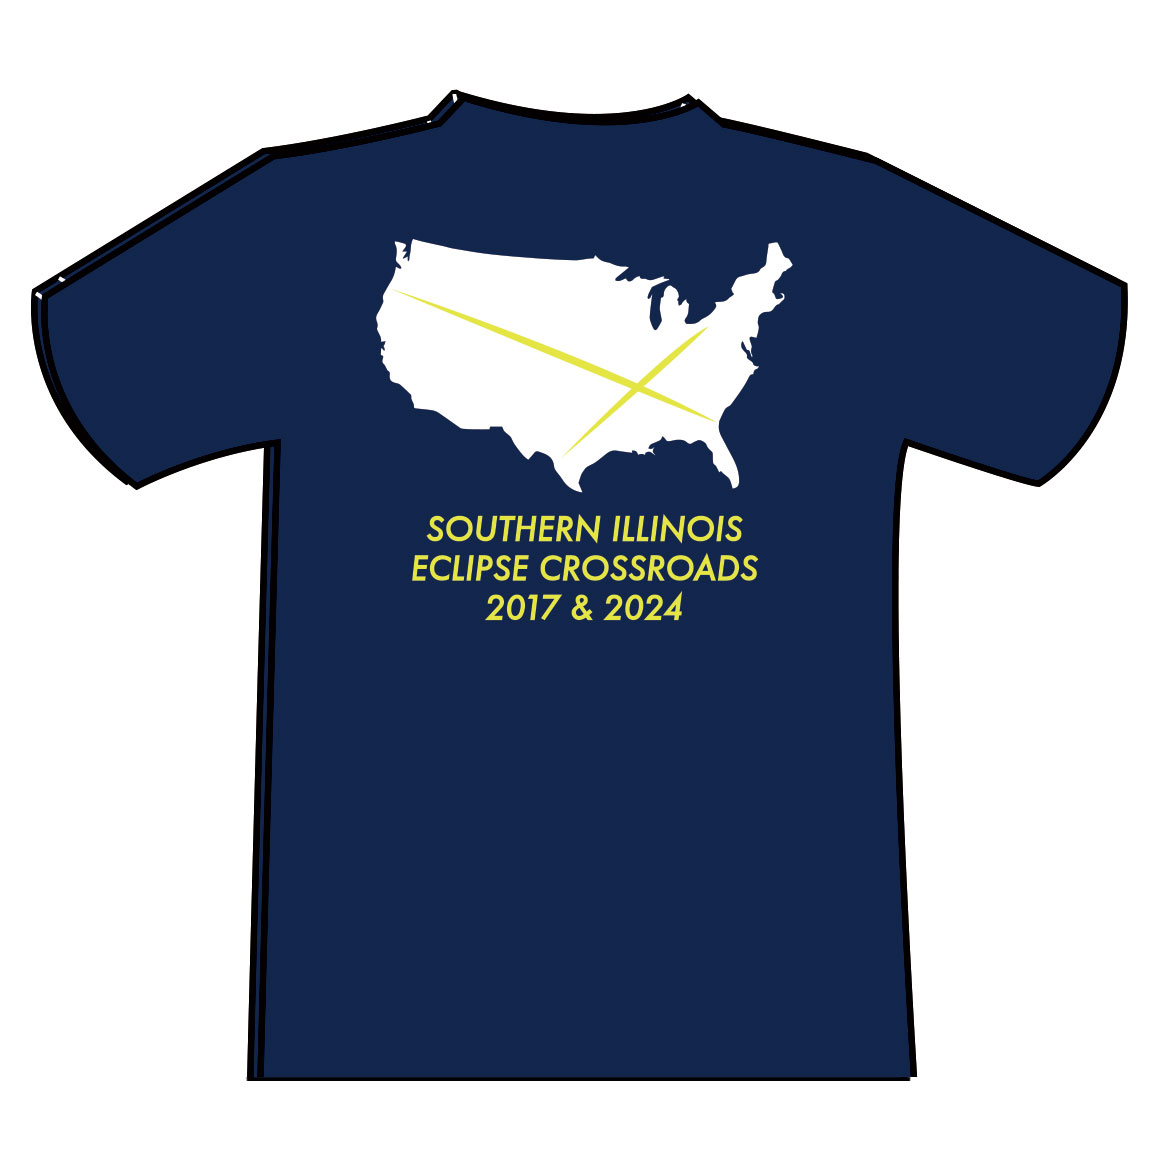 Alternative Image for the CARBONDALE ECLIPSE CROSSROADS  WITH MAP ON BACK - NAVY T-SHIRT product